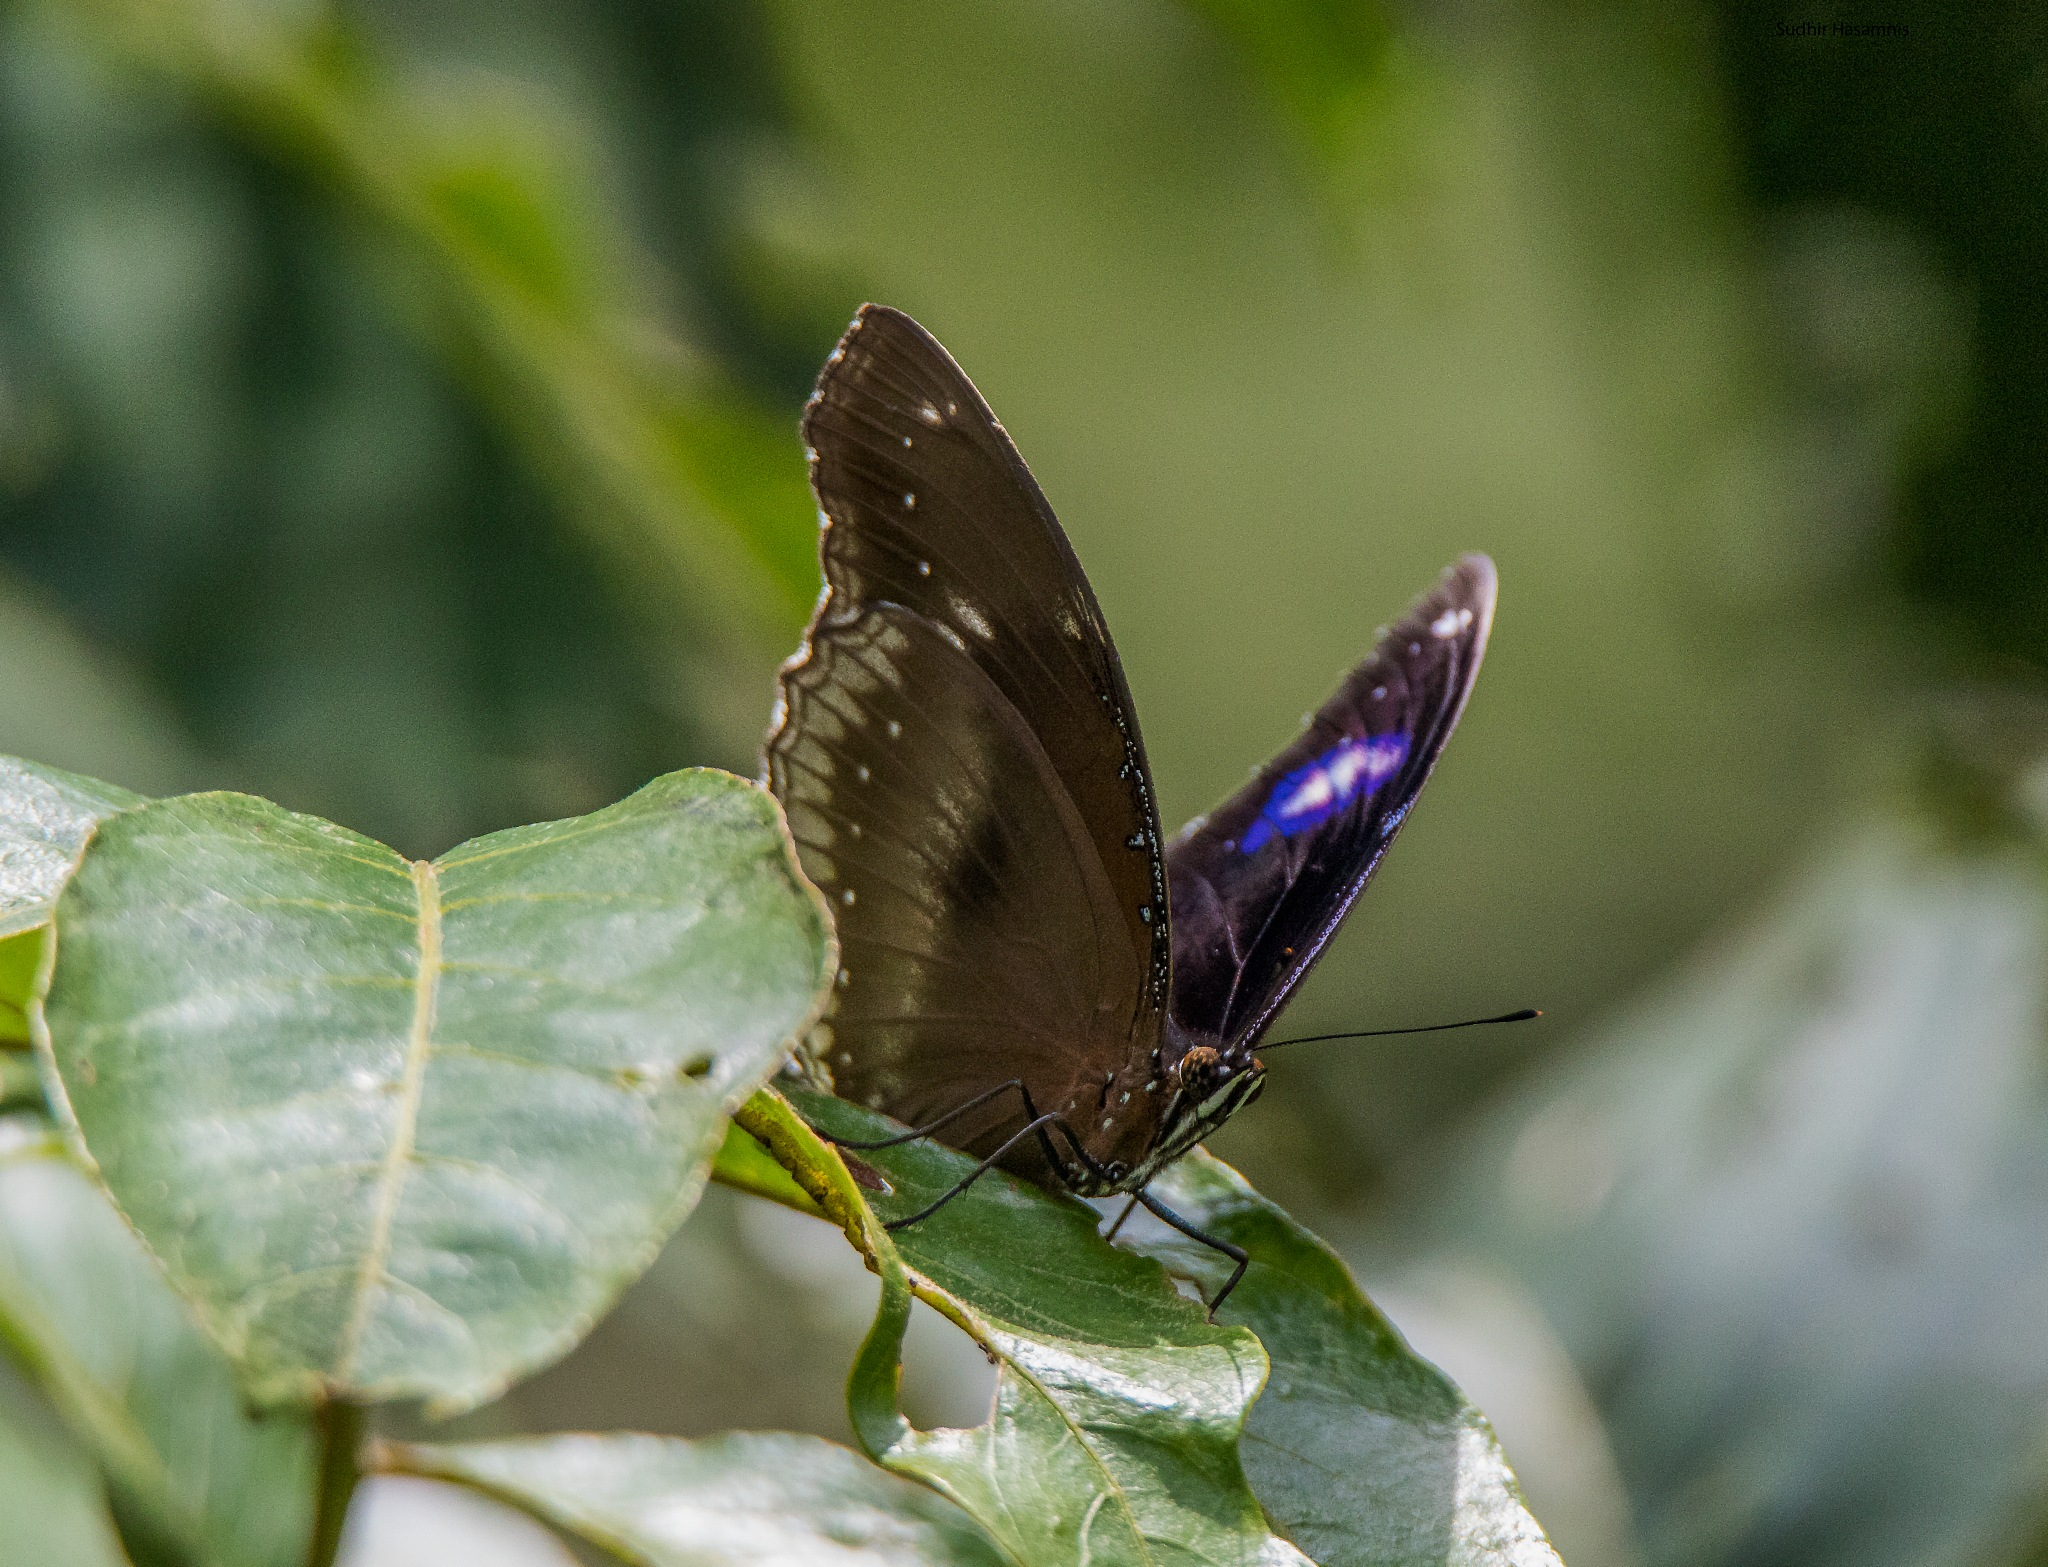 The Butterfly by DrSudhir Hasamnis